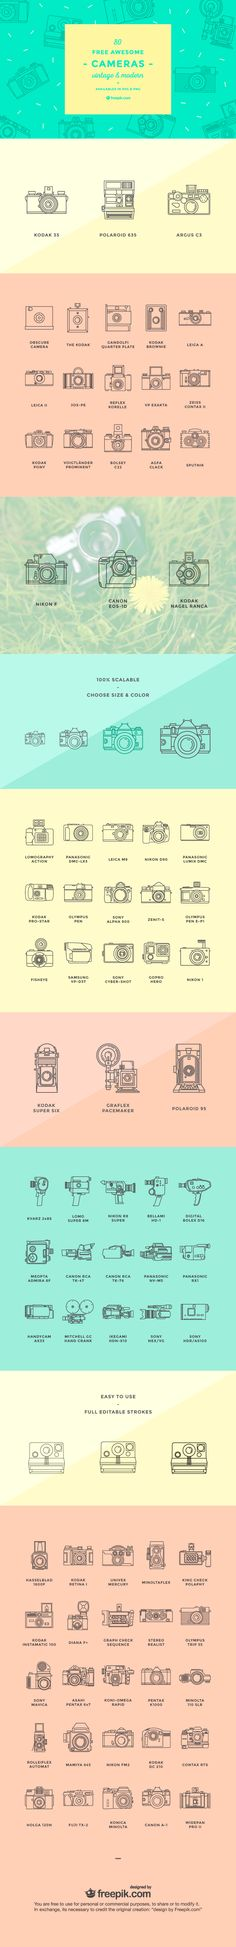 Free awesome cameras  vintage & modern